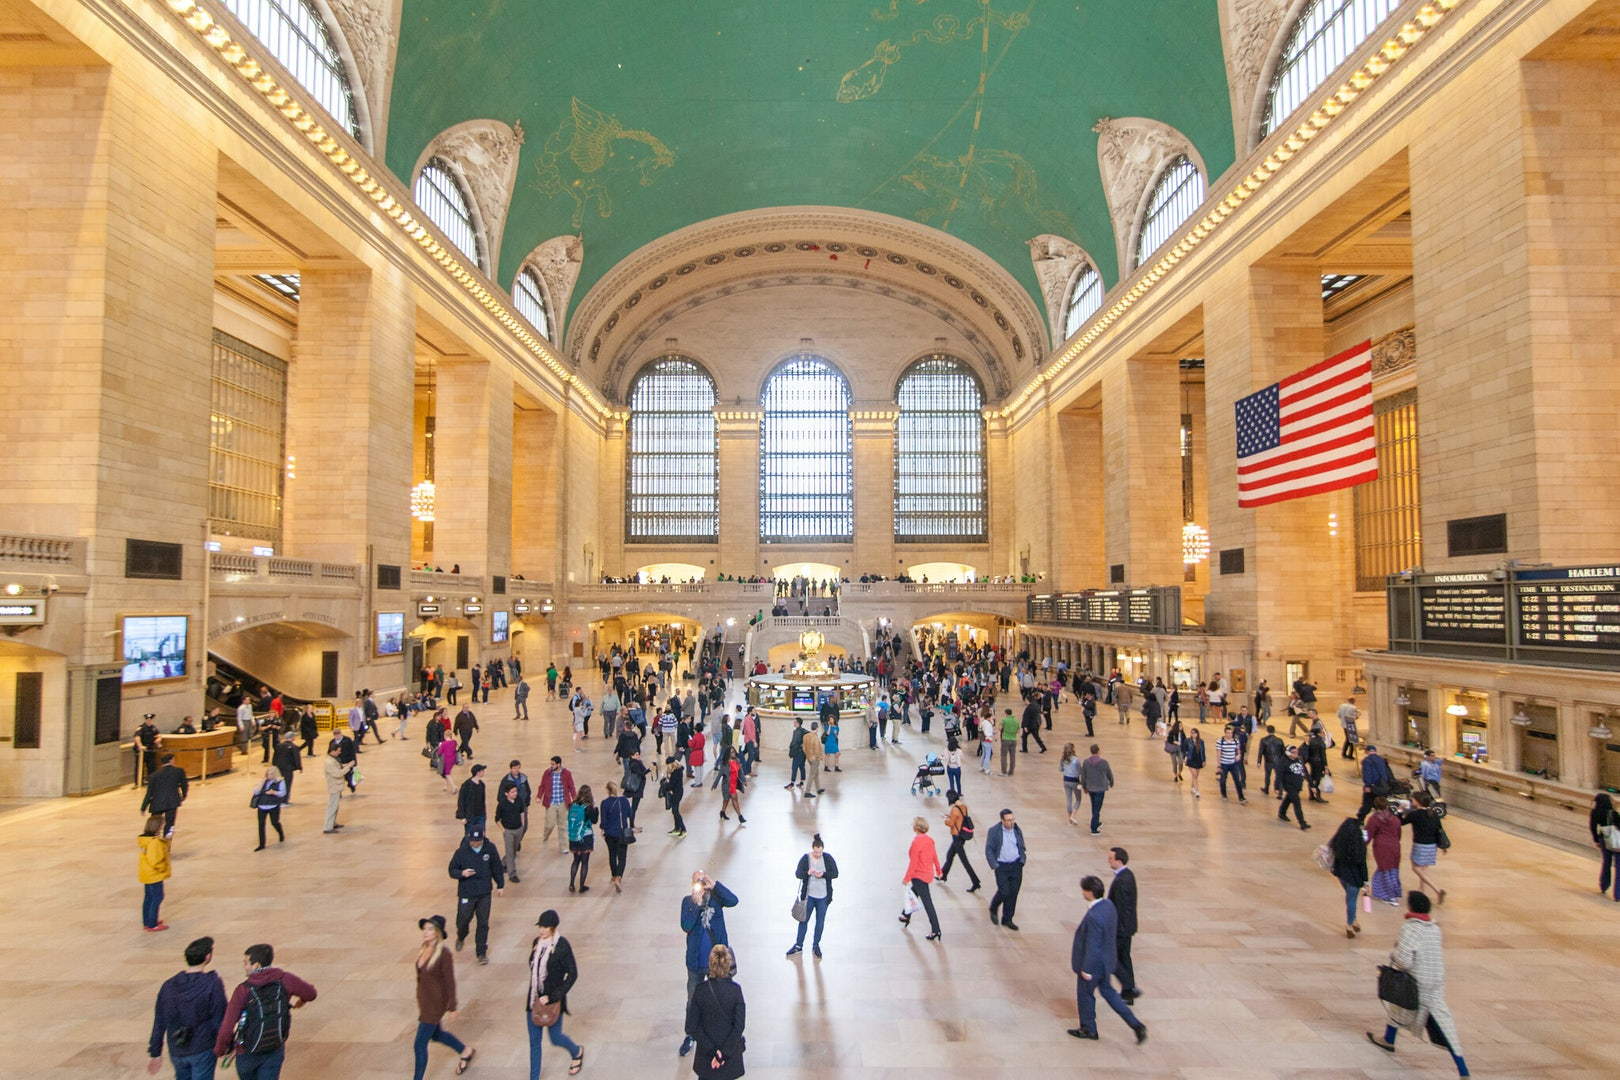 people in the hall of Grand Central Station NYC